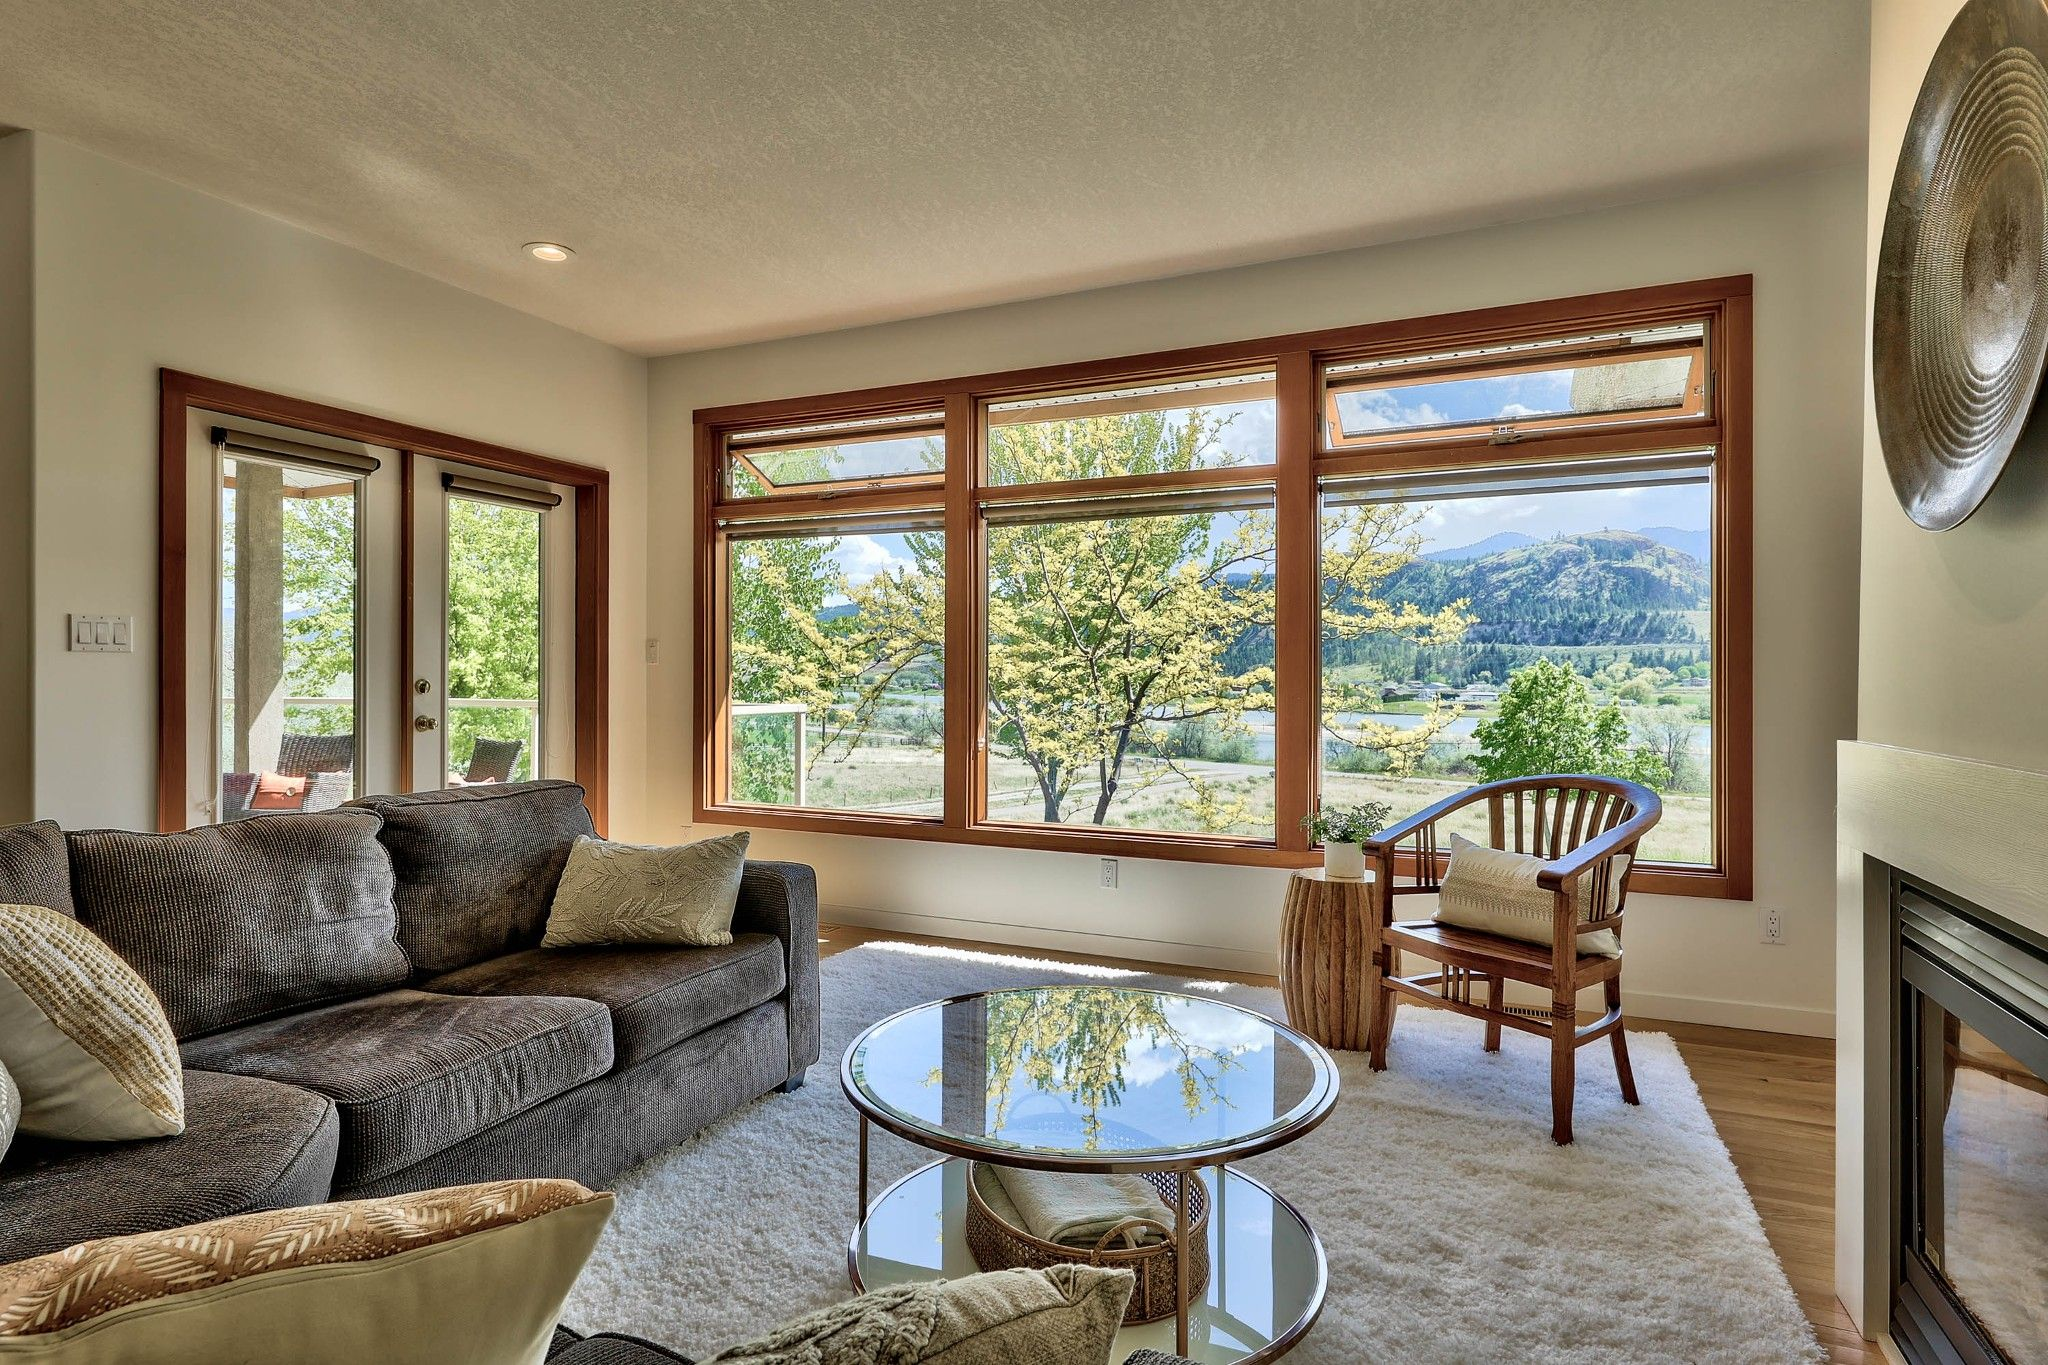 Photo 15: Photos: 3299 E Shuswap Road in Kamloops: South Thompson Valley House for sale : MLS®# 162162